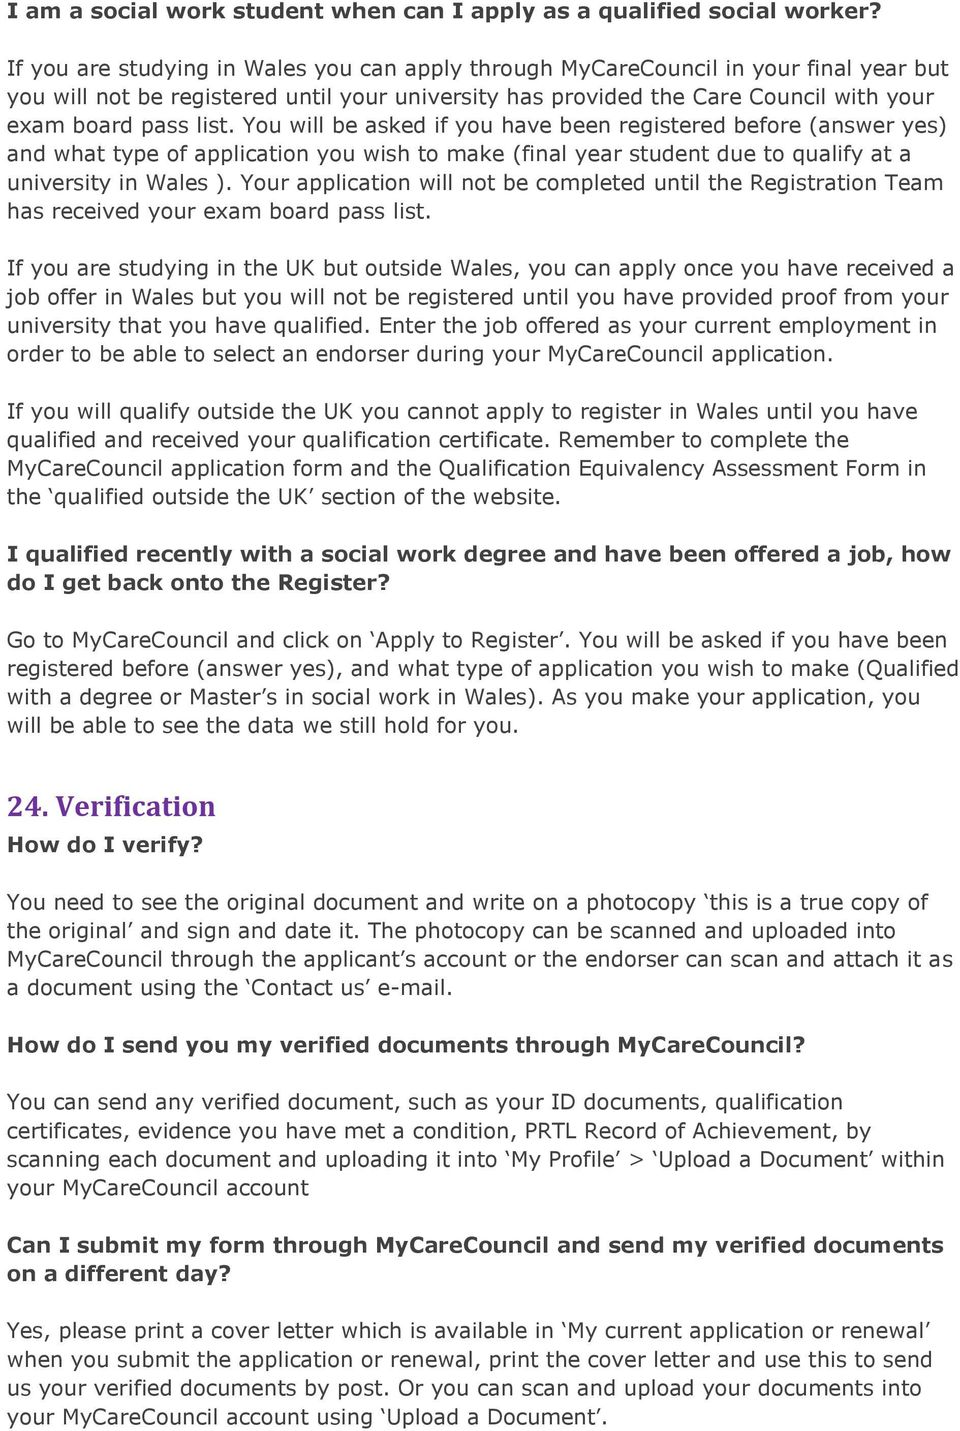 You will be asked if you have been registered before (answer yes) and what type of application you wish to make (final year student due to qualify at a university in Wales ).